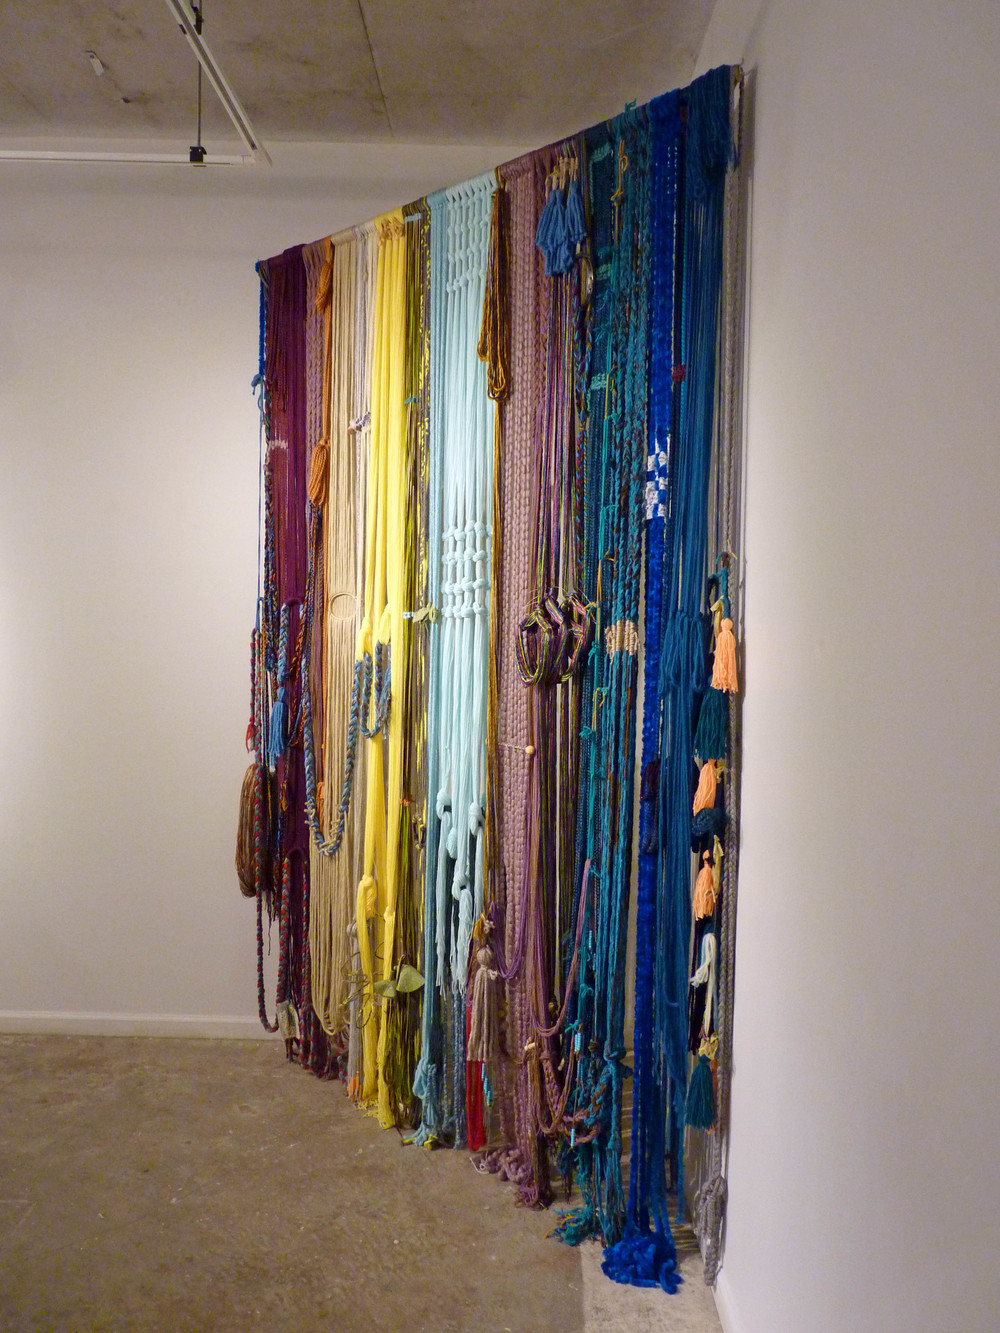 Teen Baleen (Corset), 2015, Yarn with fabric, wood and metal, 7' x 4' x 11'